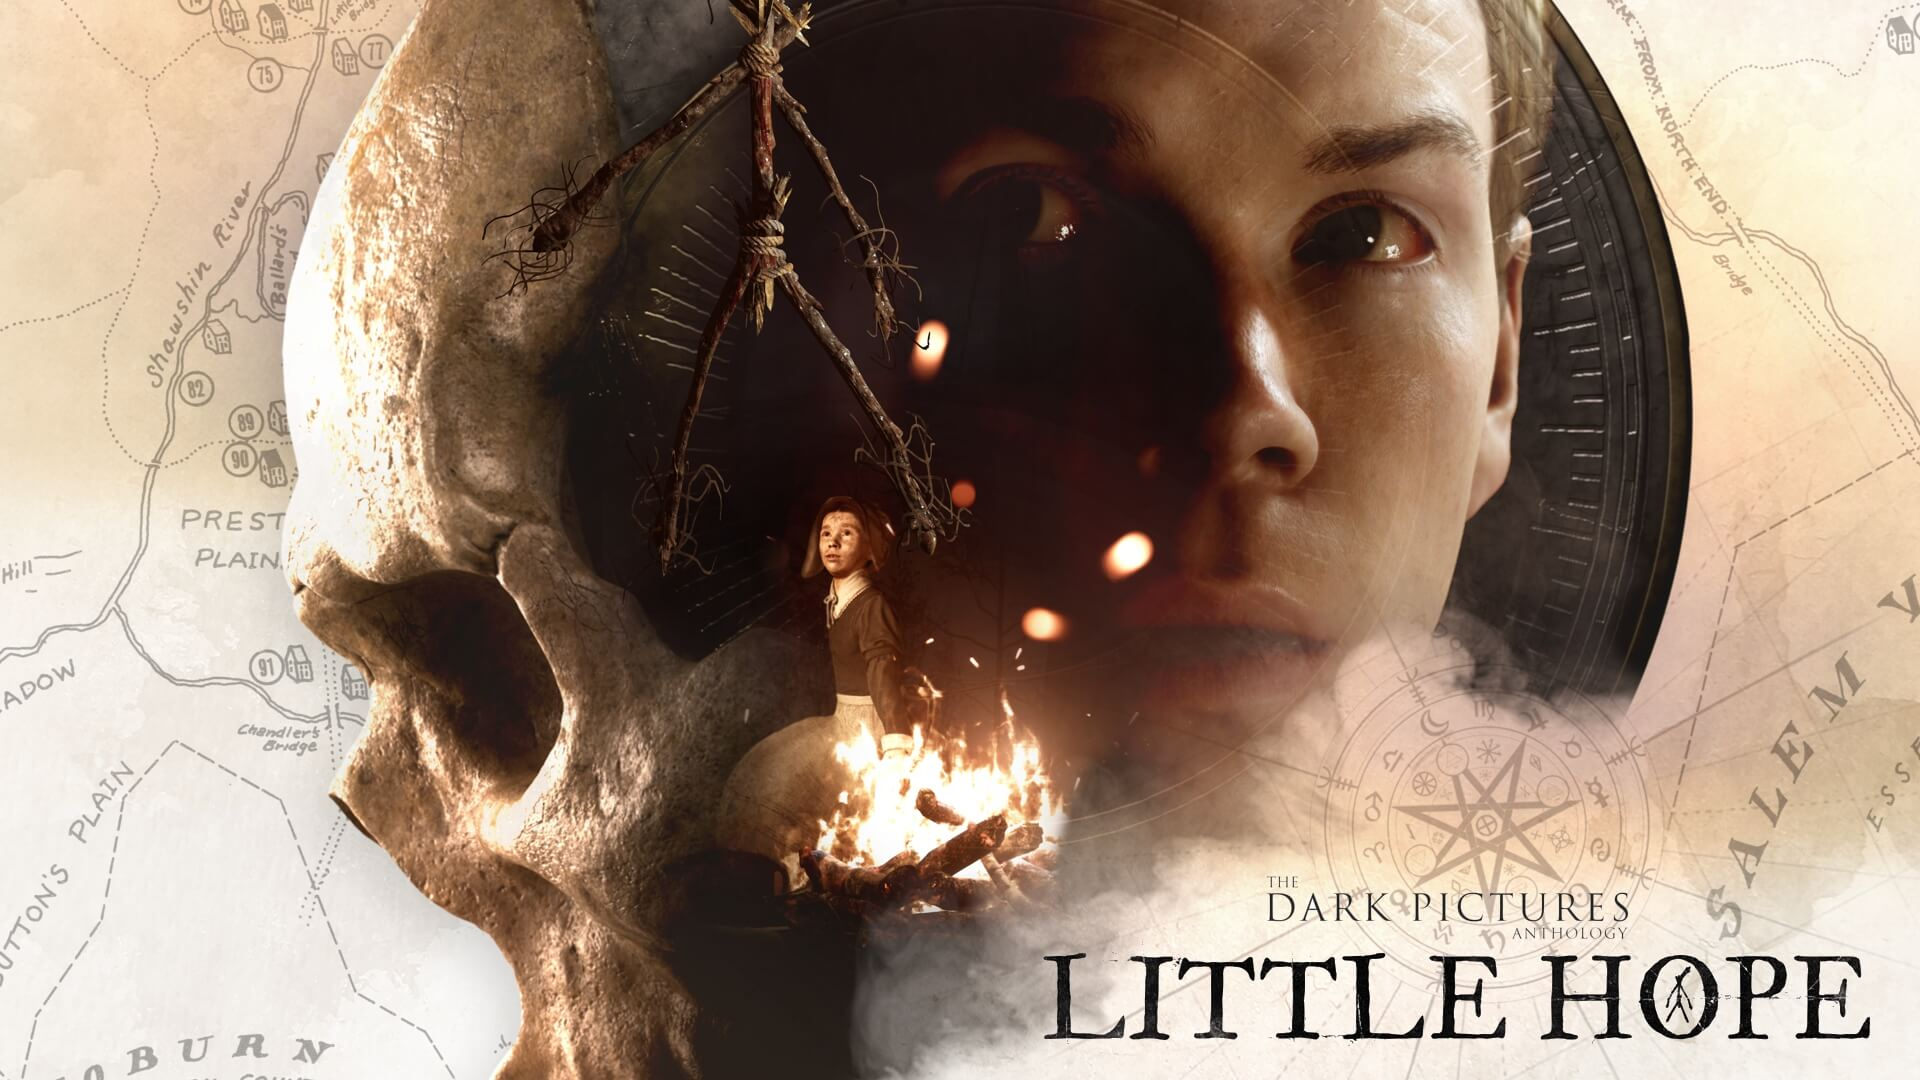 The Dark Pictures Little Hope portada